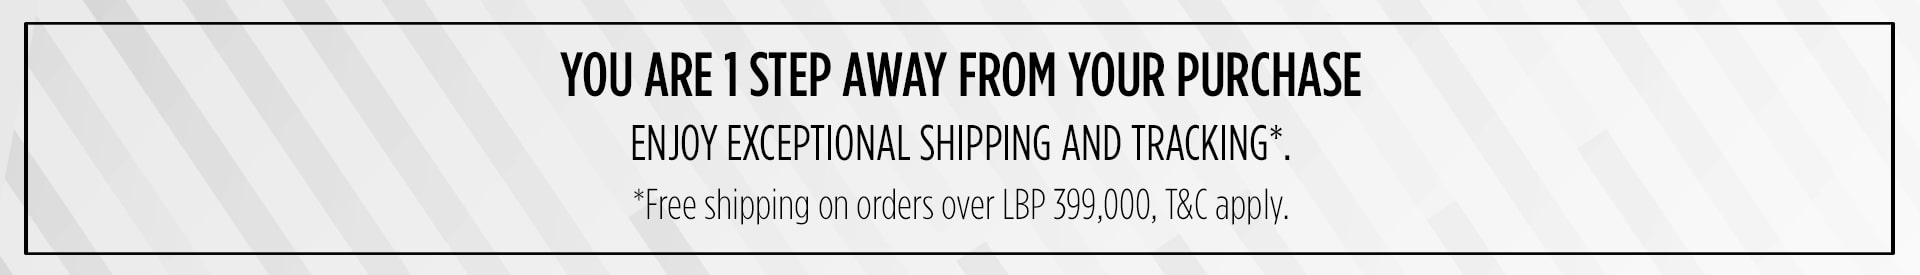 Free shipping on order over LBP 399,000